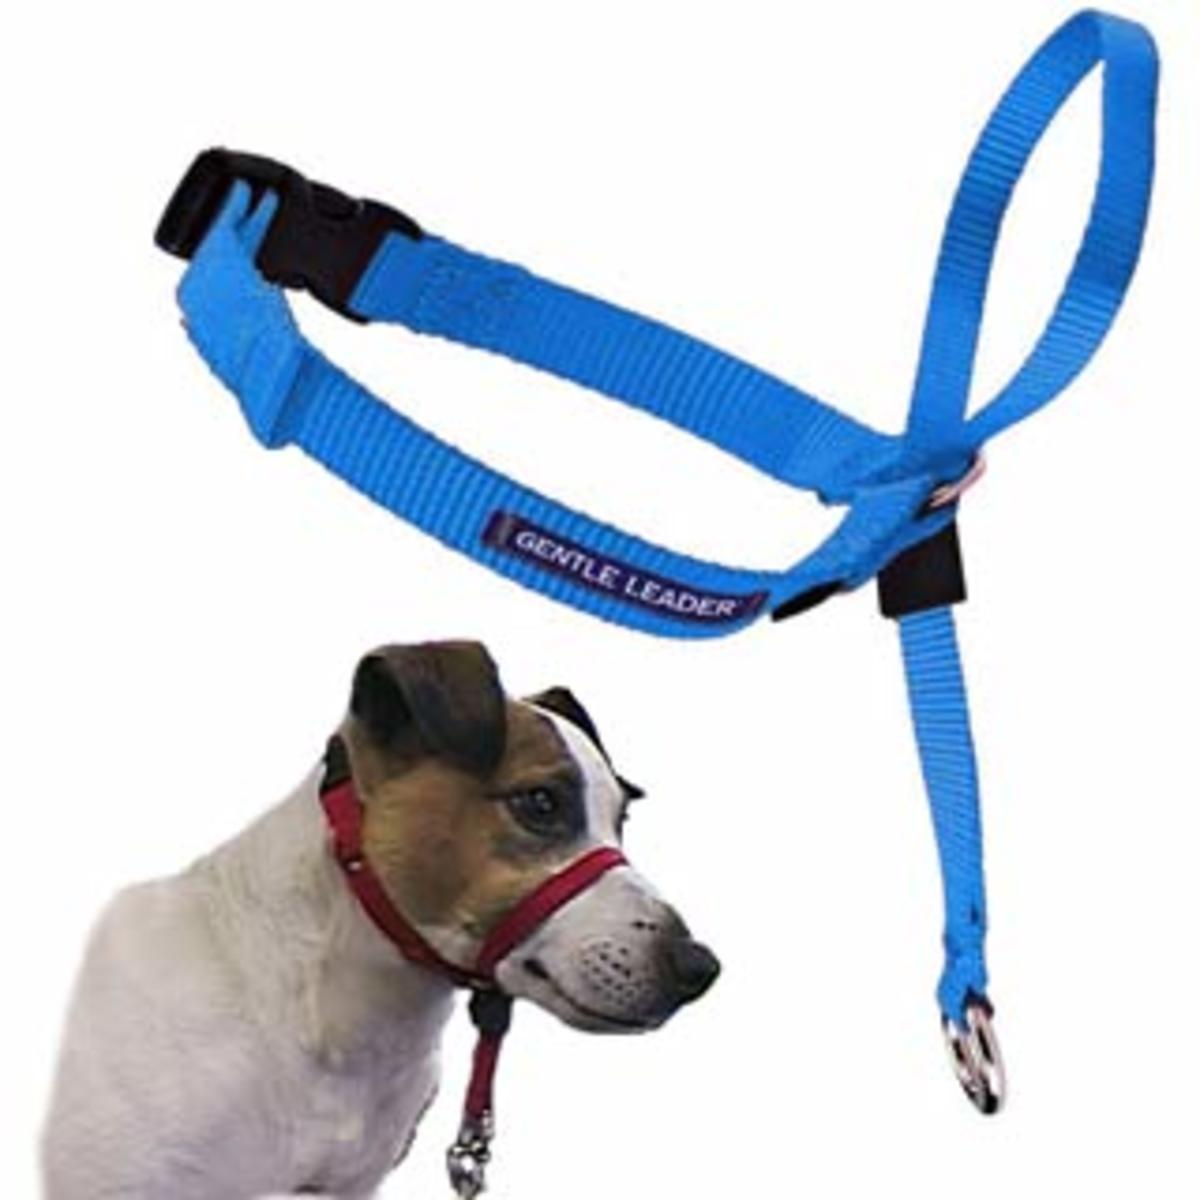 A Gentle Leader head halter. Connect your leash to the ring beneath the chin for more control over the dog's head.